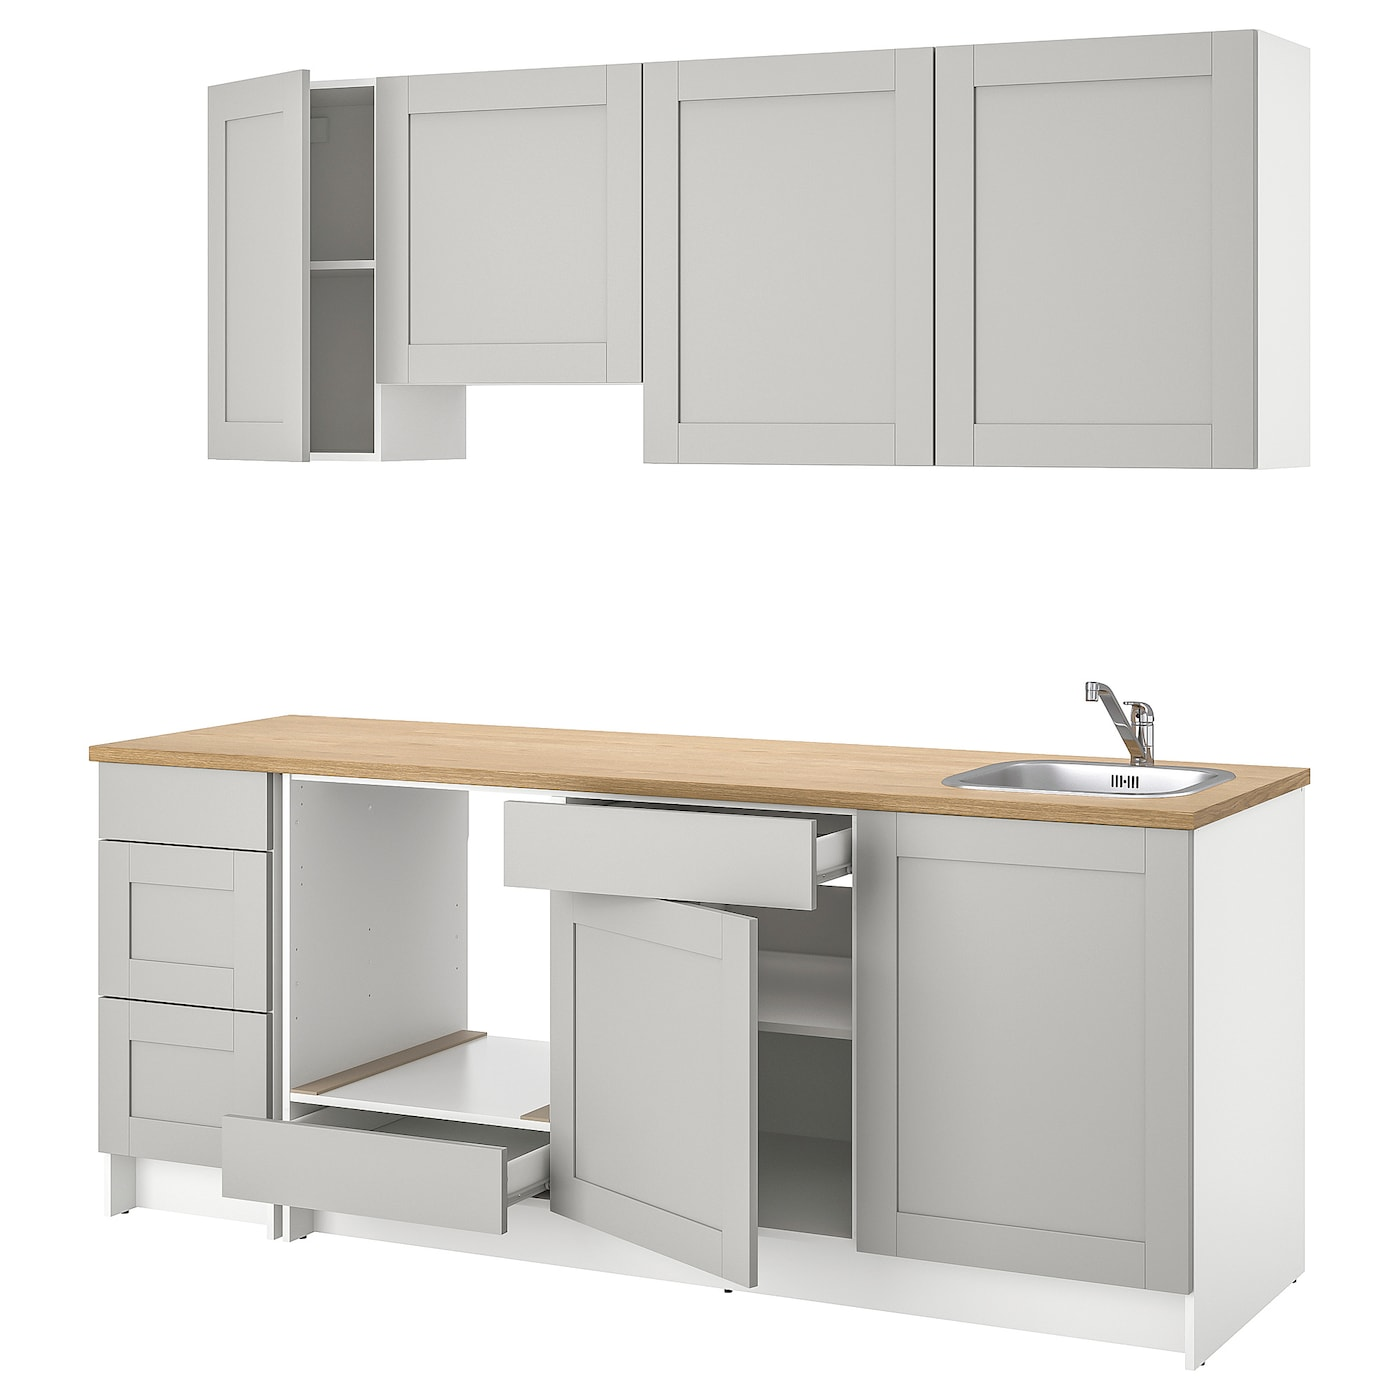 Ikea Kitchen Modules: IKEA Modular Kitchens